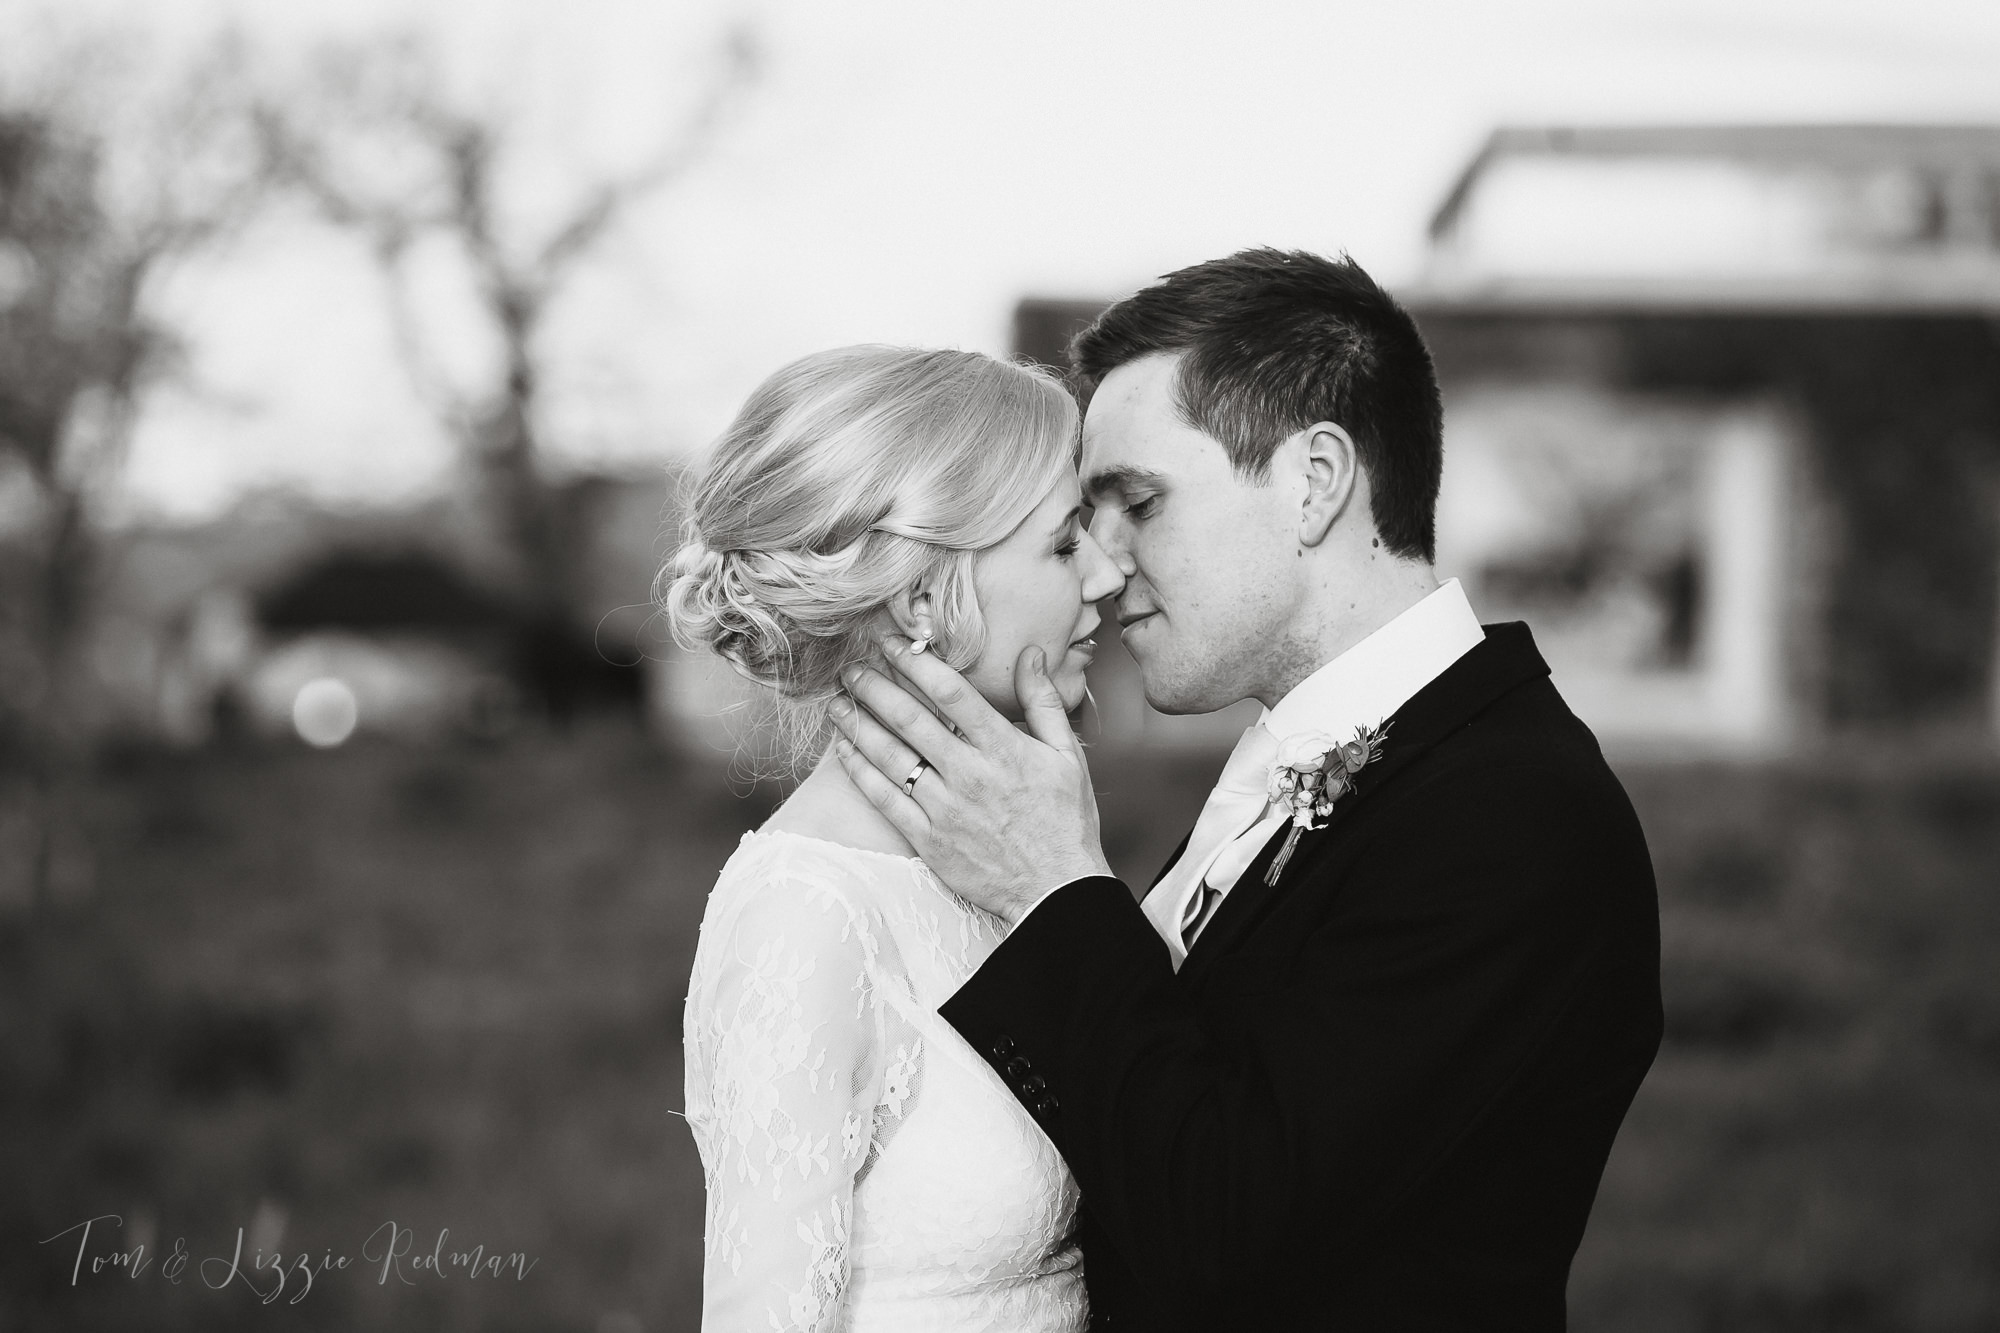 Dorset wedding photographers Tom & Lizzie Redman 066.jpg